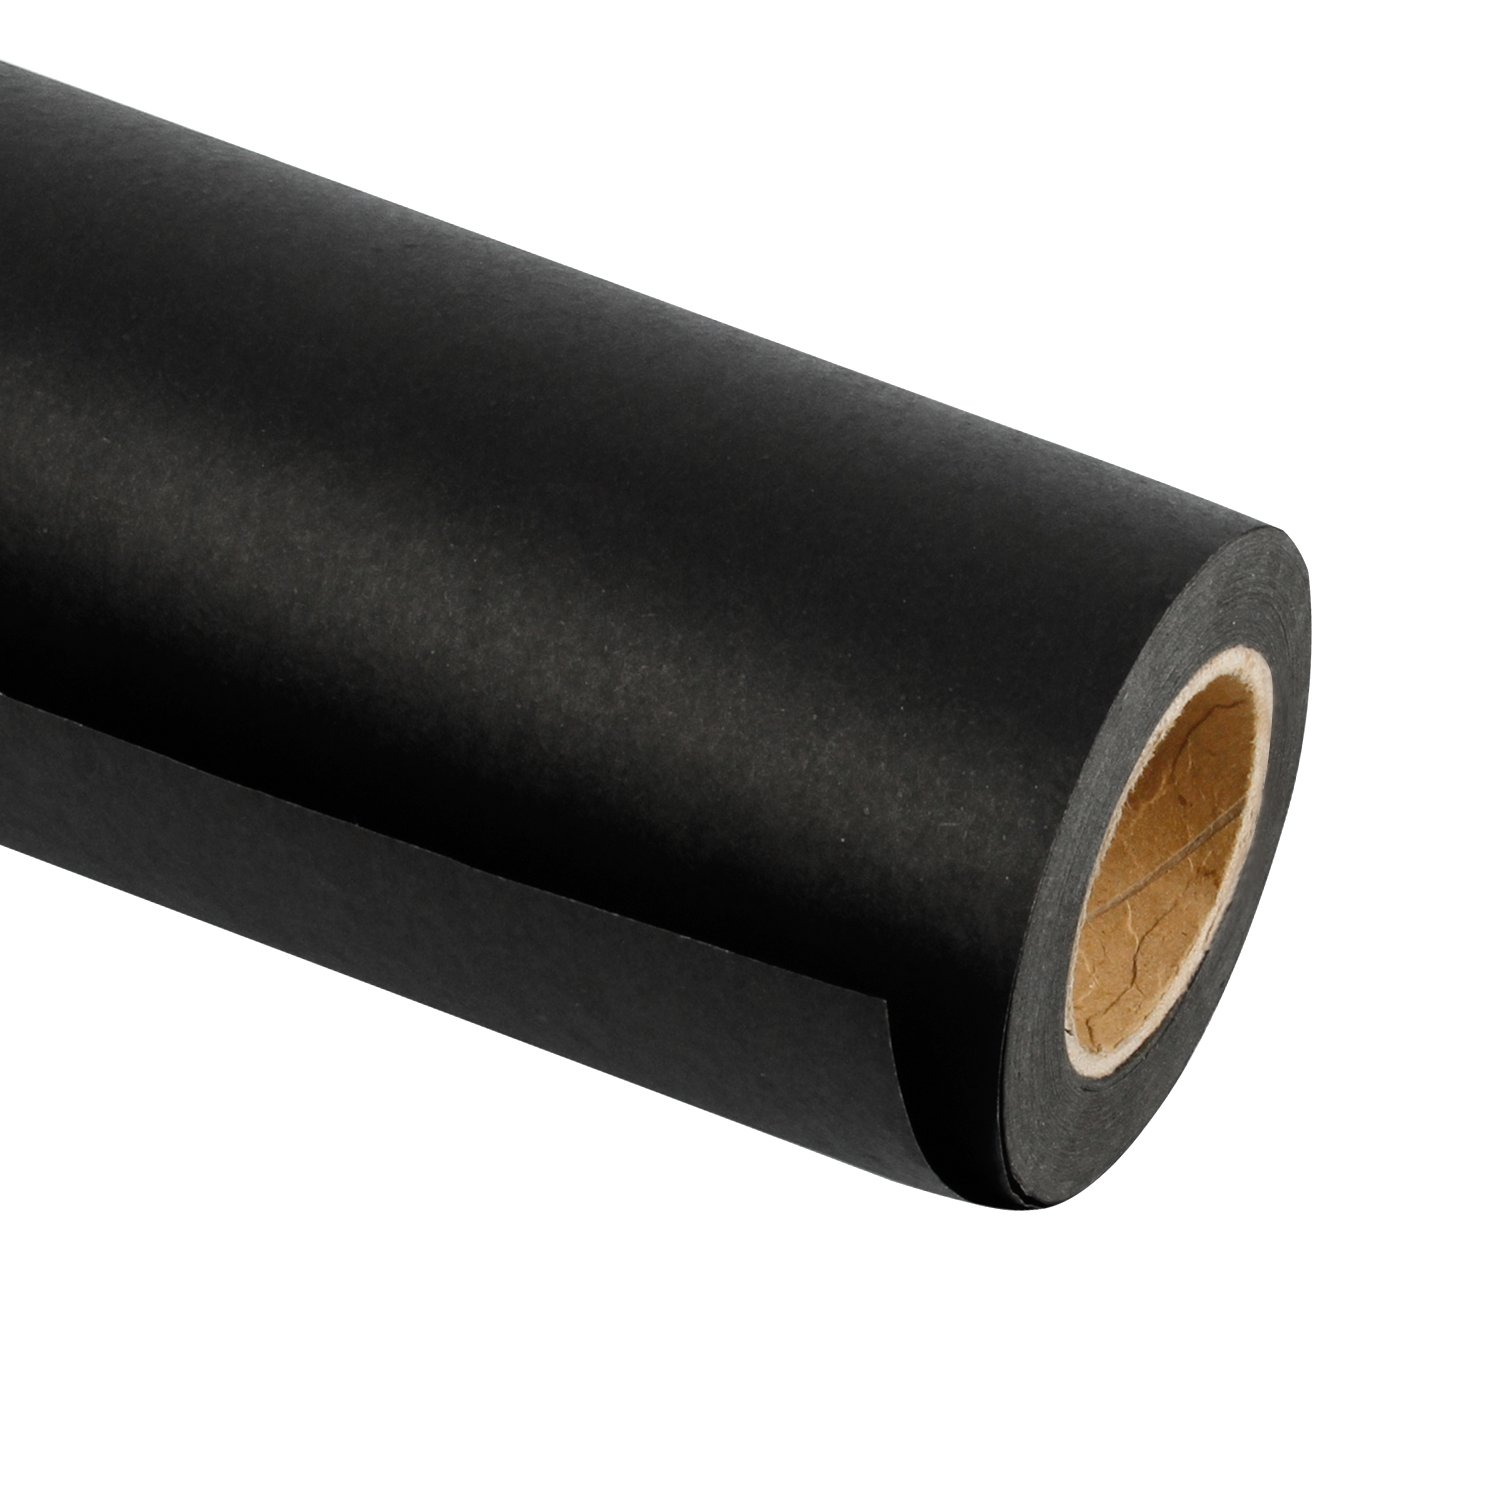 RUSPEPA Black Kraft Paper Roll - 24 inch x 100 Feet Perfect for for Crafts, Art, Gift Wrapping, Packing, Postal, Shipping, Dunnage & Parcel 4336878848